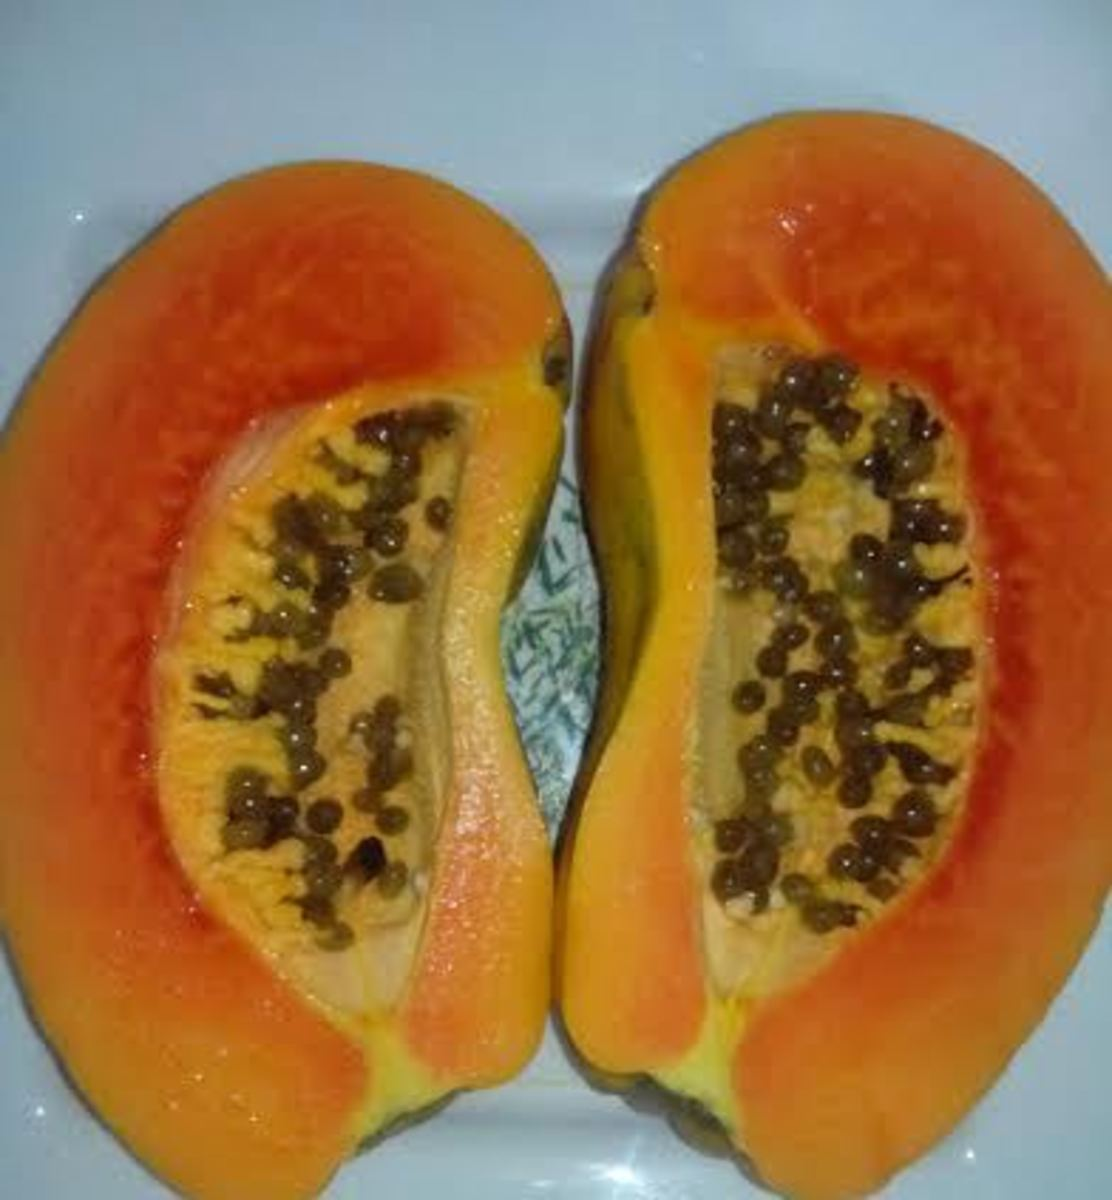 Papaya cut into halves